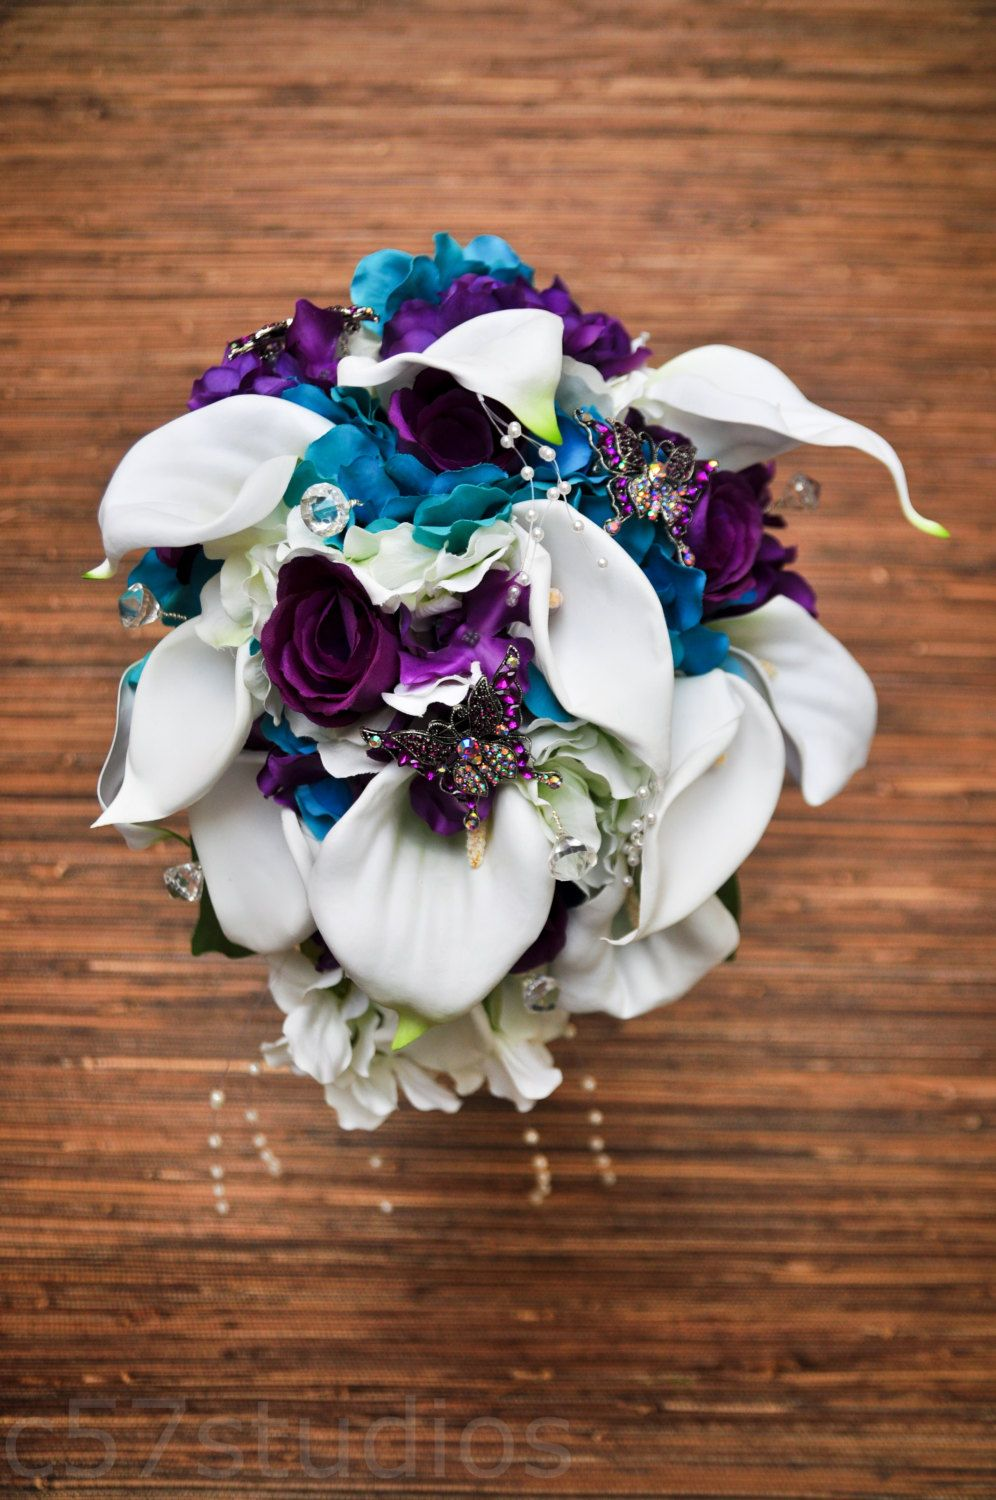 Made to Order: White, purple and tuquoise; Butterfly Broach Calalilly Cascading Bride Bouquet by c57Studios on Etsy